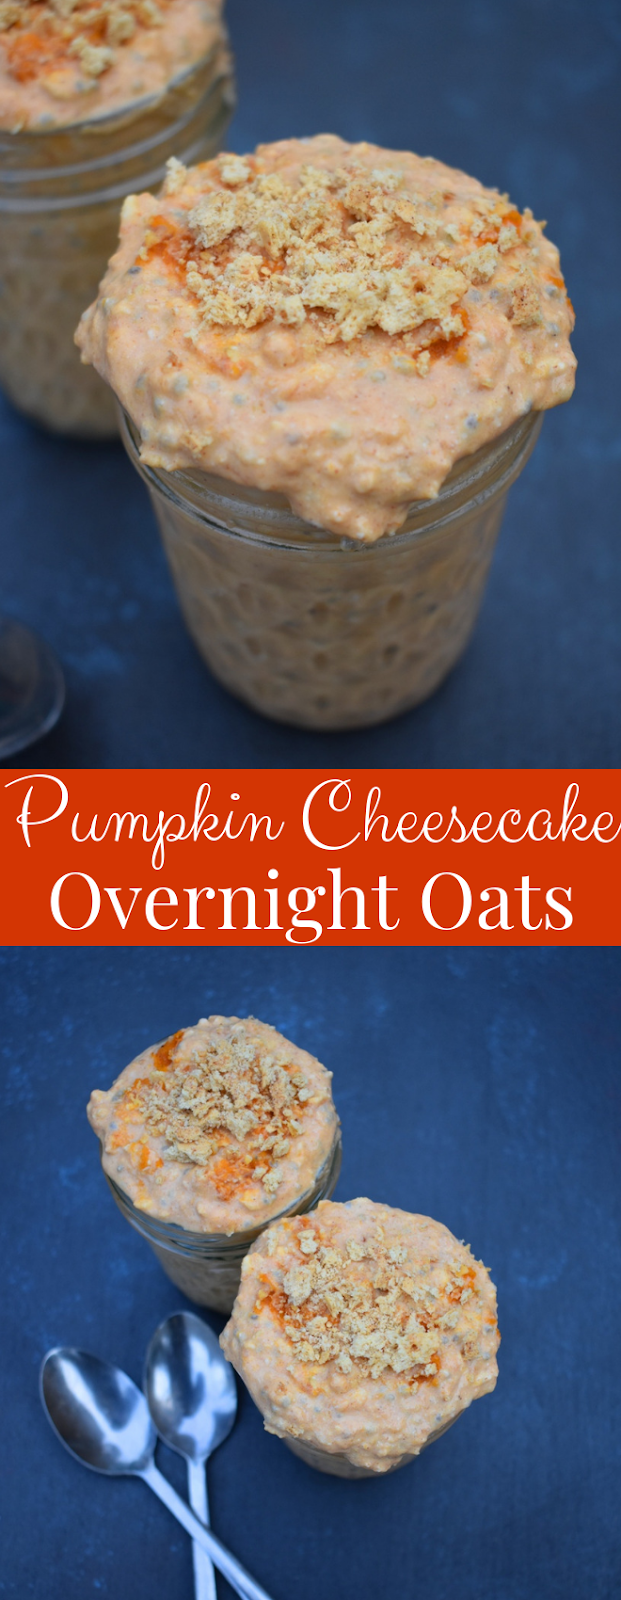 Pumpkin Cheesecake Overnight Oats are super creamy and taste like your favorite dessert but are healthy with oats, Greek yogurt, pumpkin and collagen peptides! Loaded with swirls of cream cheese, pumpkin spice and graham crackers for that true cheesecake flavor. www.nutritionistreviews.com #oatmeal #oats #overnightoats #breakfast #healthy #cleaneating #pumpkin #cheesecake